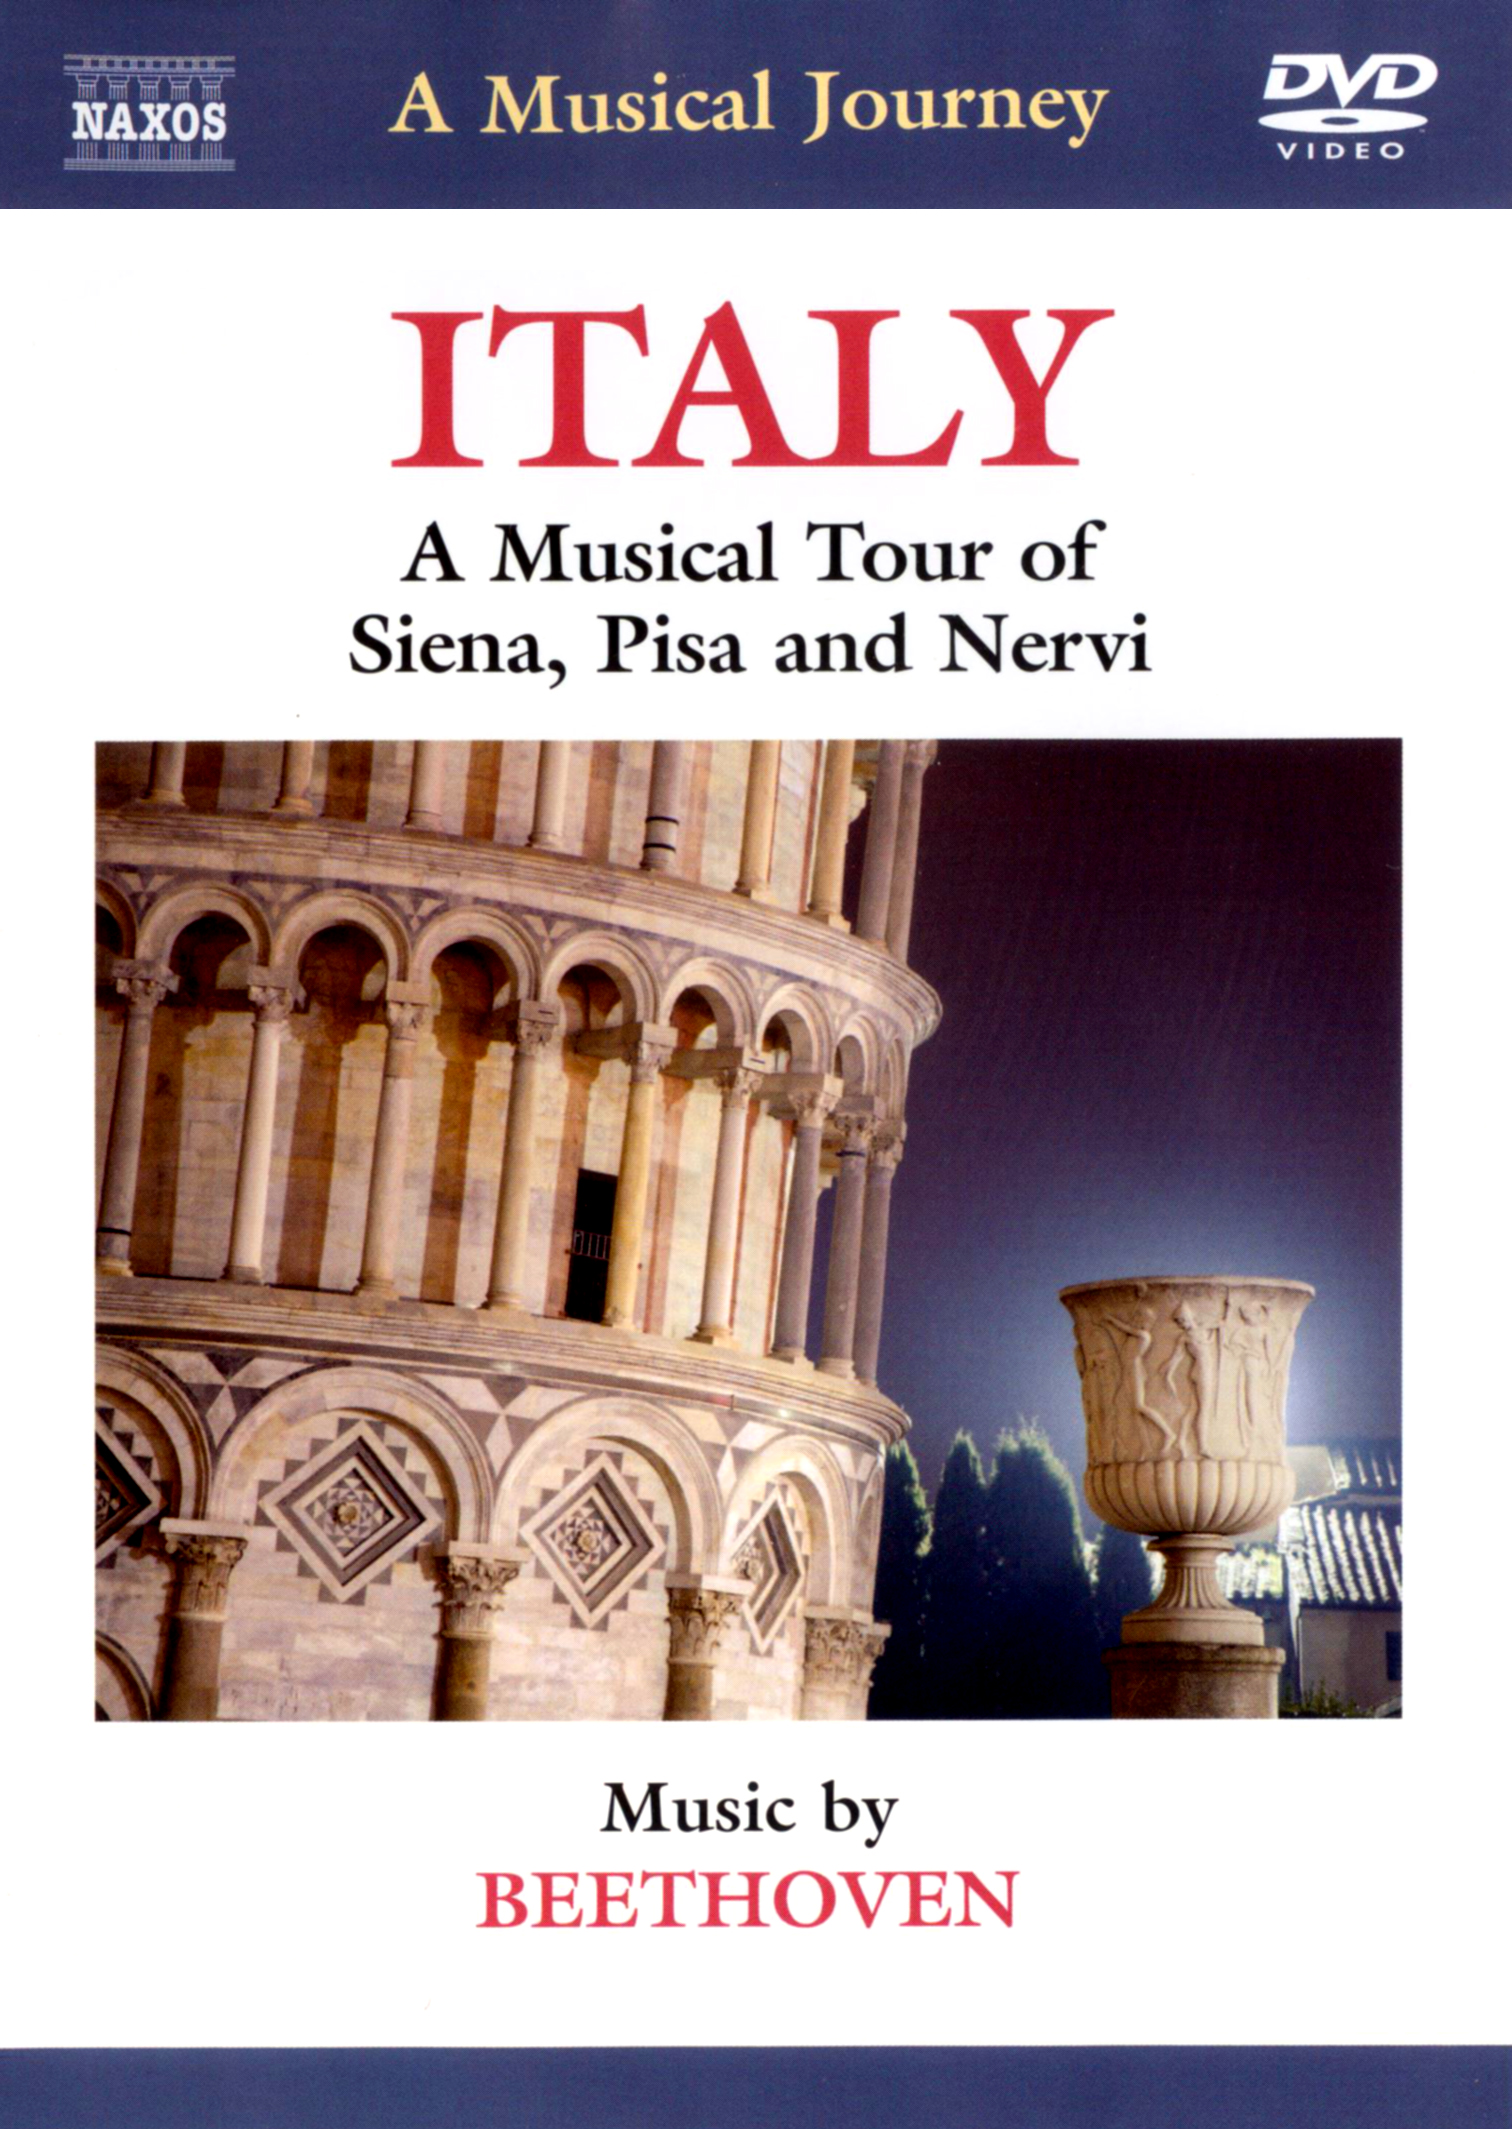 A Musical Journey: Italy - A Musical Tour of Siena, Pisa and Nervi